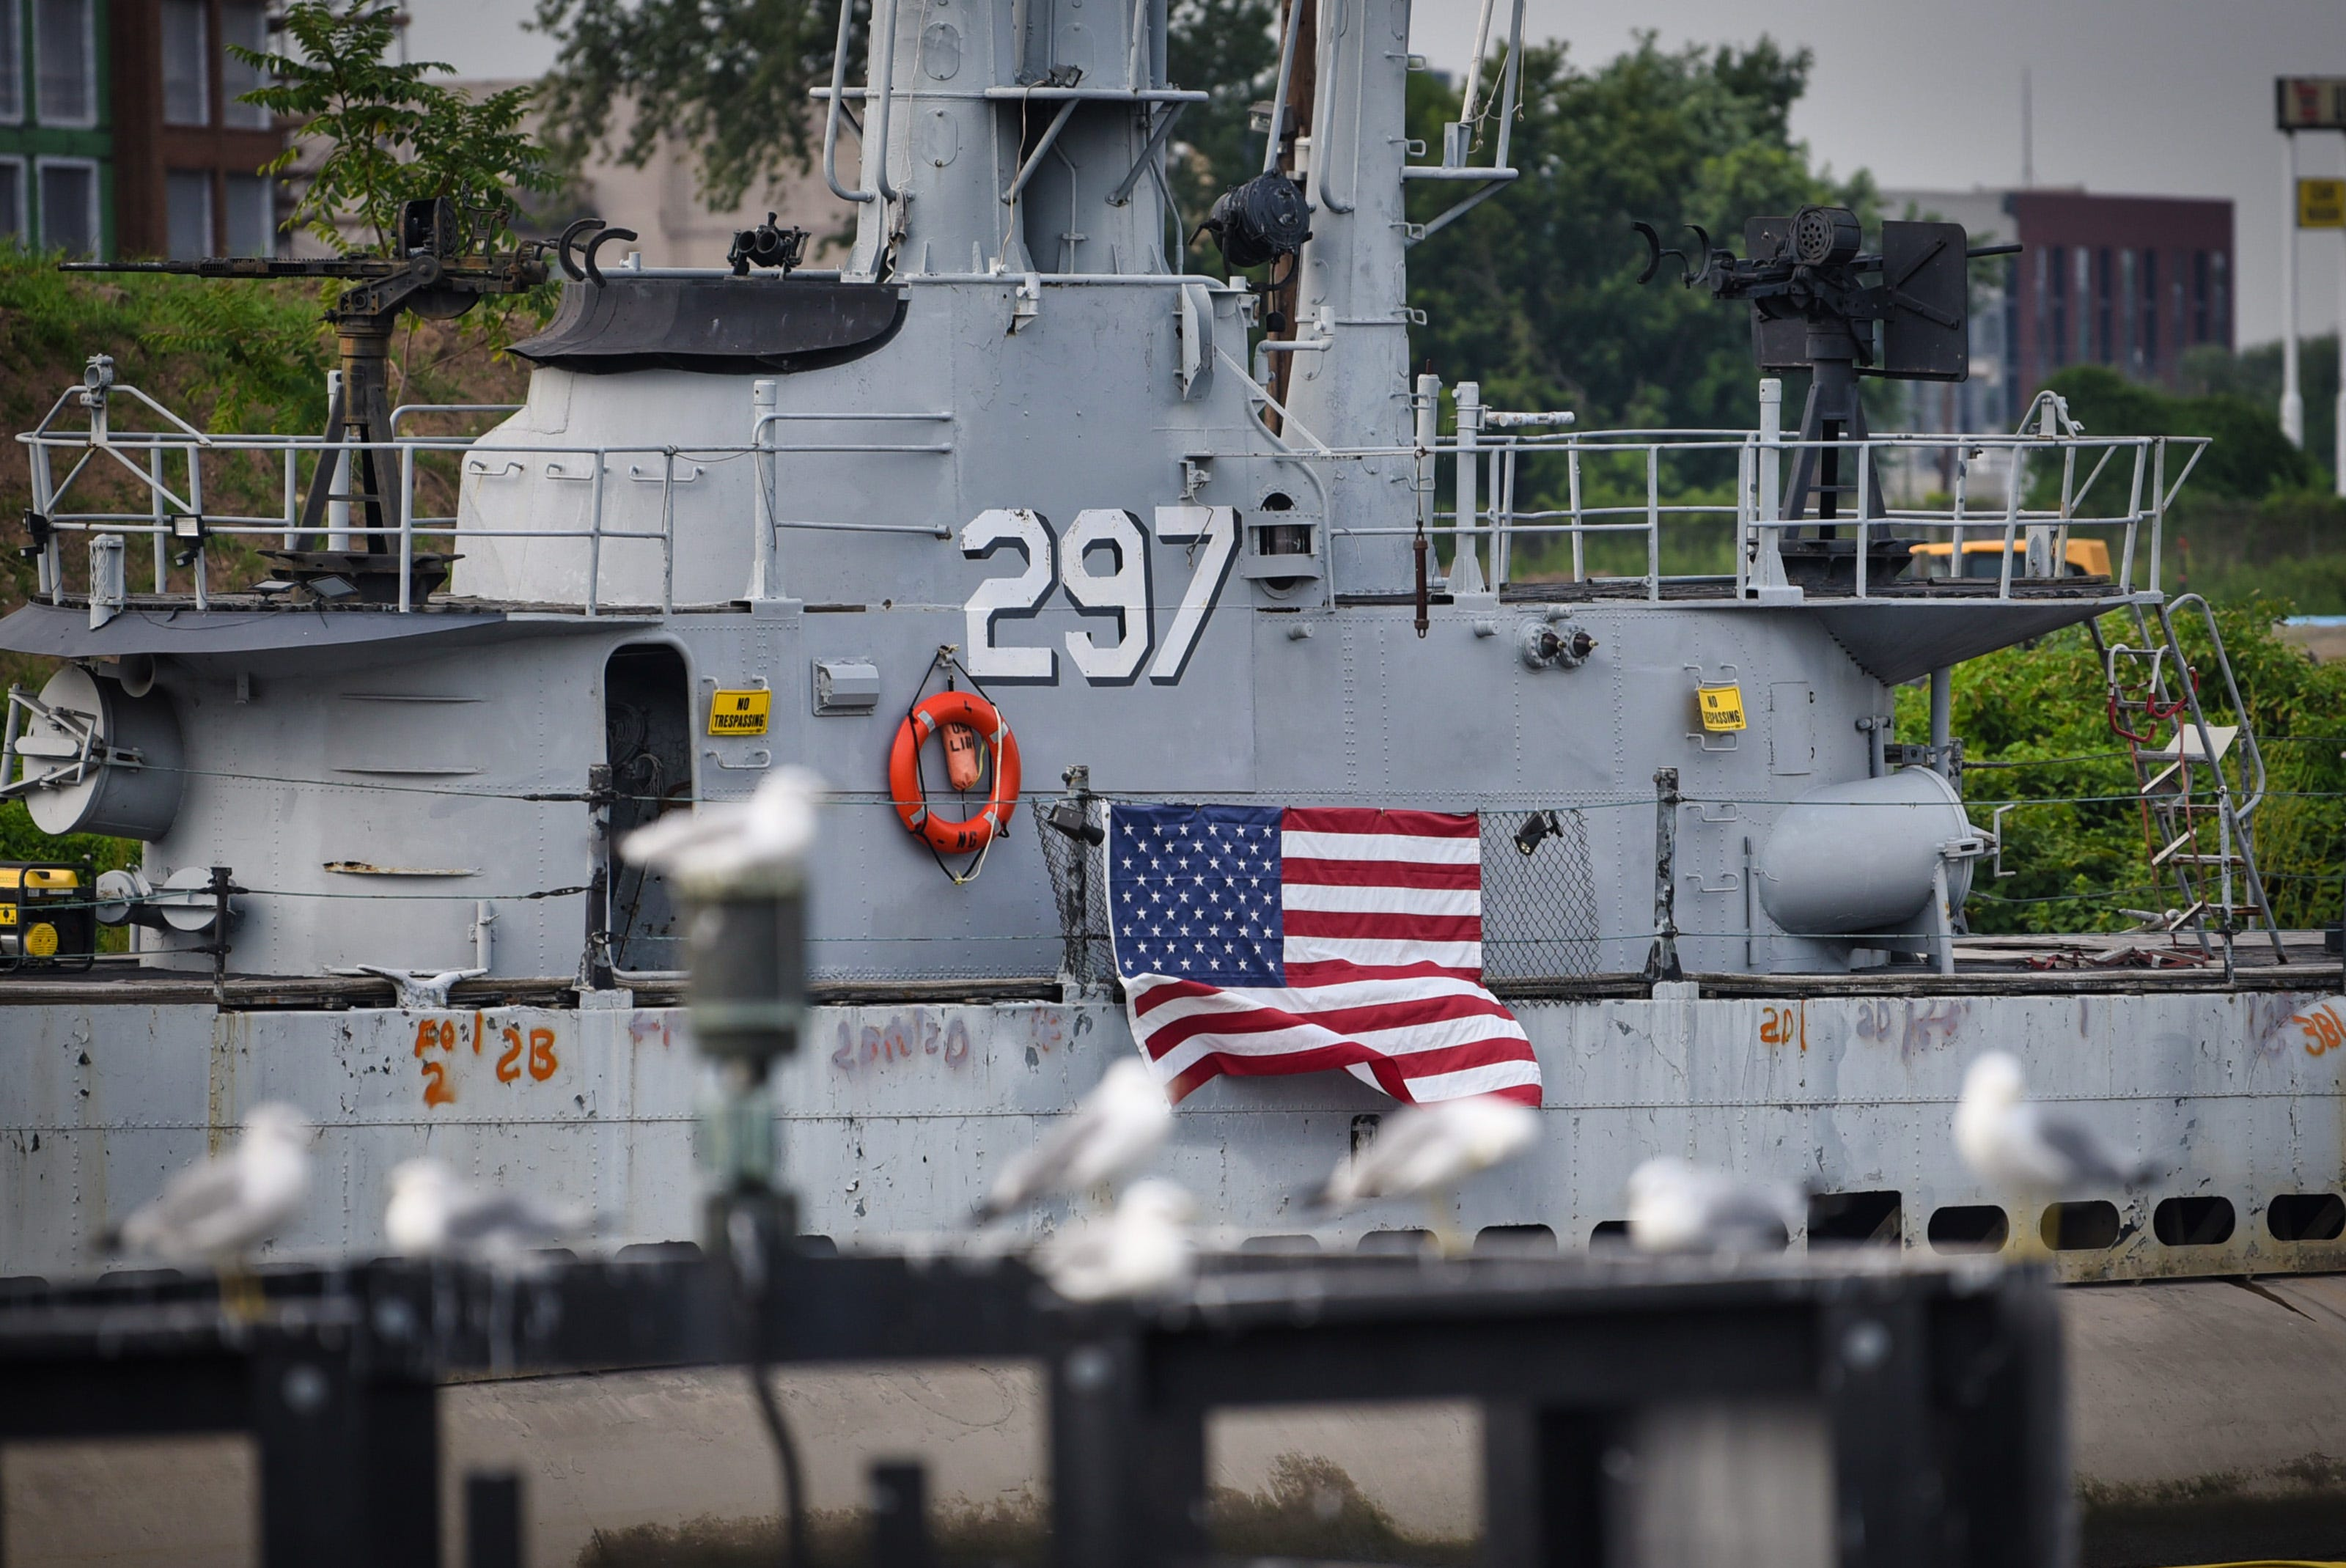 Seagulls line up in the foreground near the the USS Ling, a 312-foot long, 2,500-ton submarine veteran of World War II, which now rests on the silty bottom of Hackensack River. Photographed on 08/10/21.